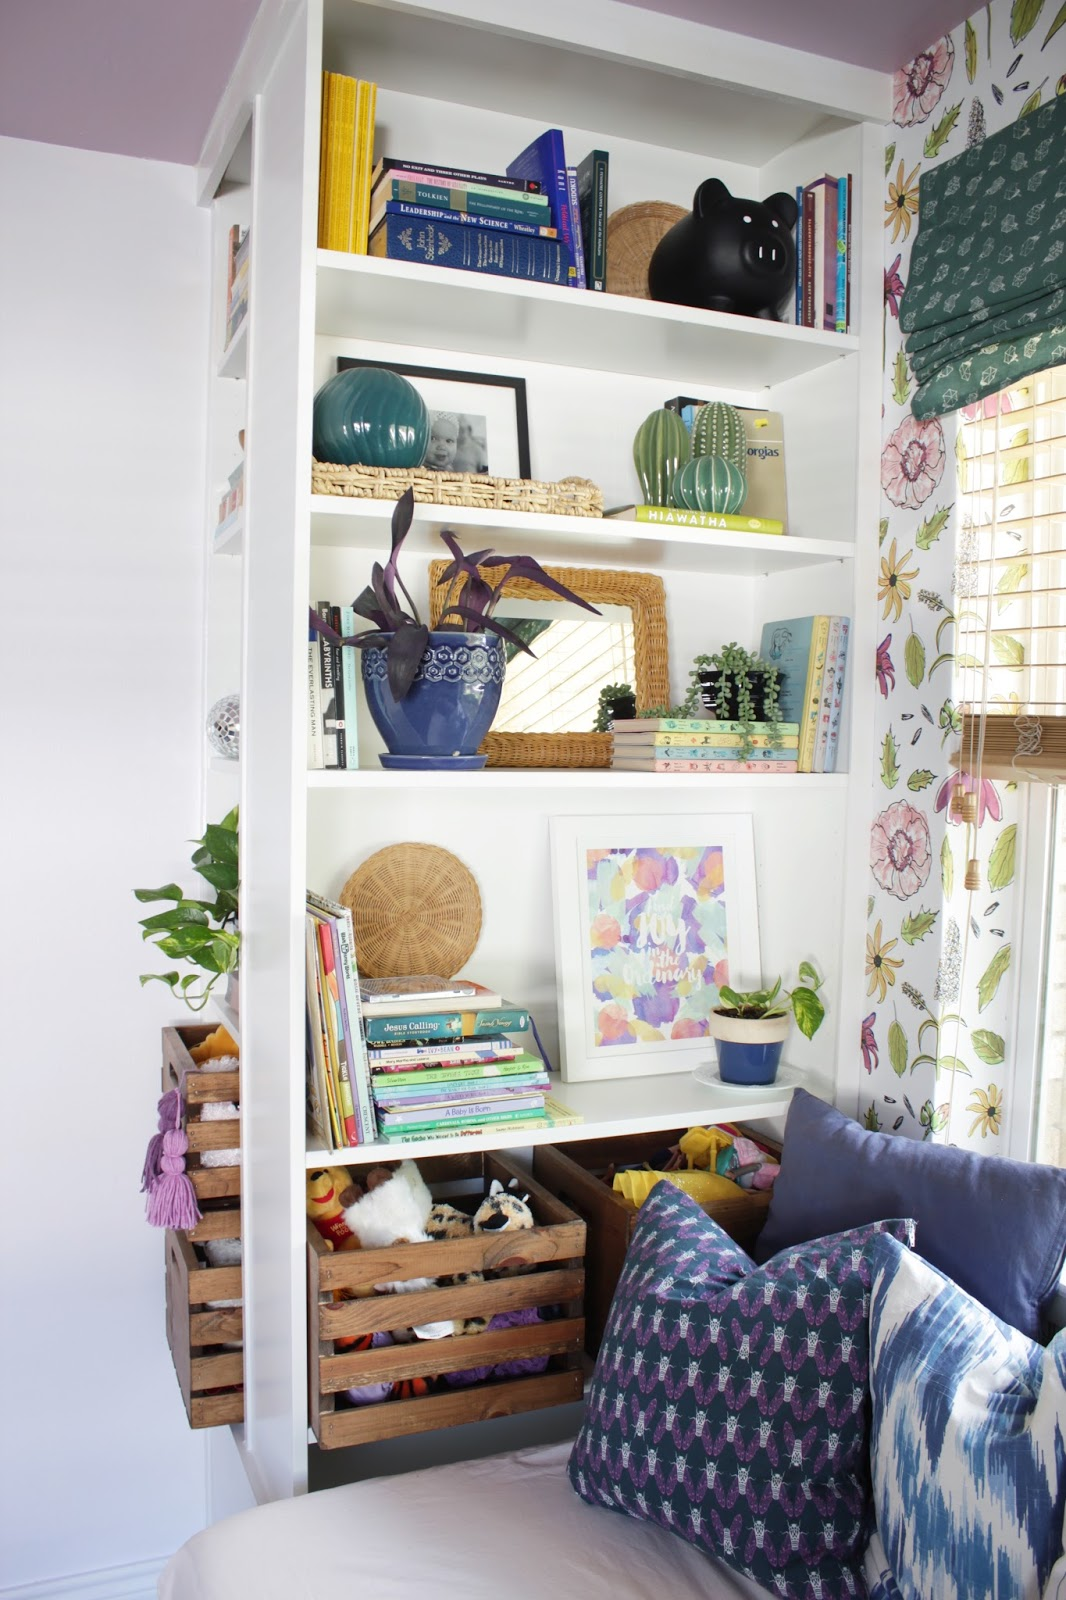 These wooden crates are a great, sturdy option for toy storage. See how I made them bookshelf ready!